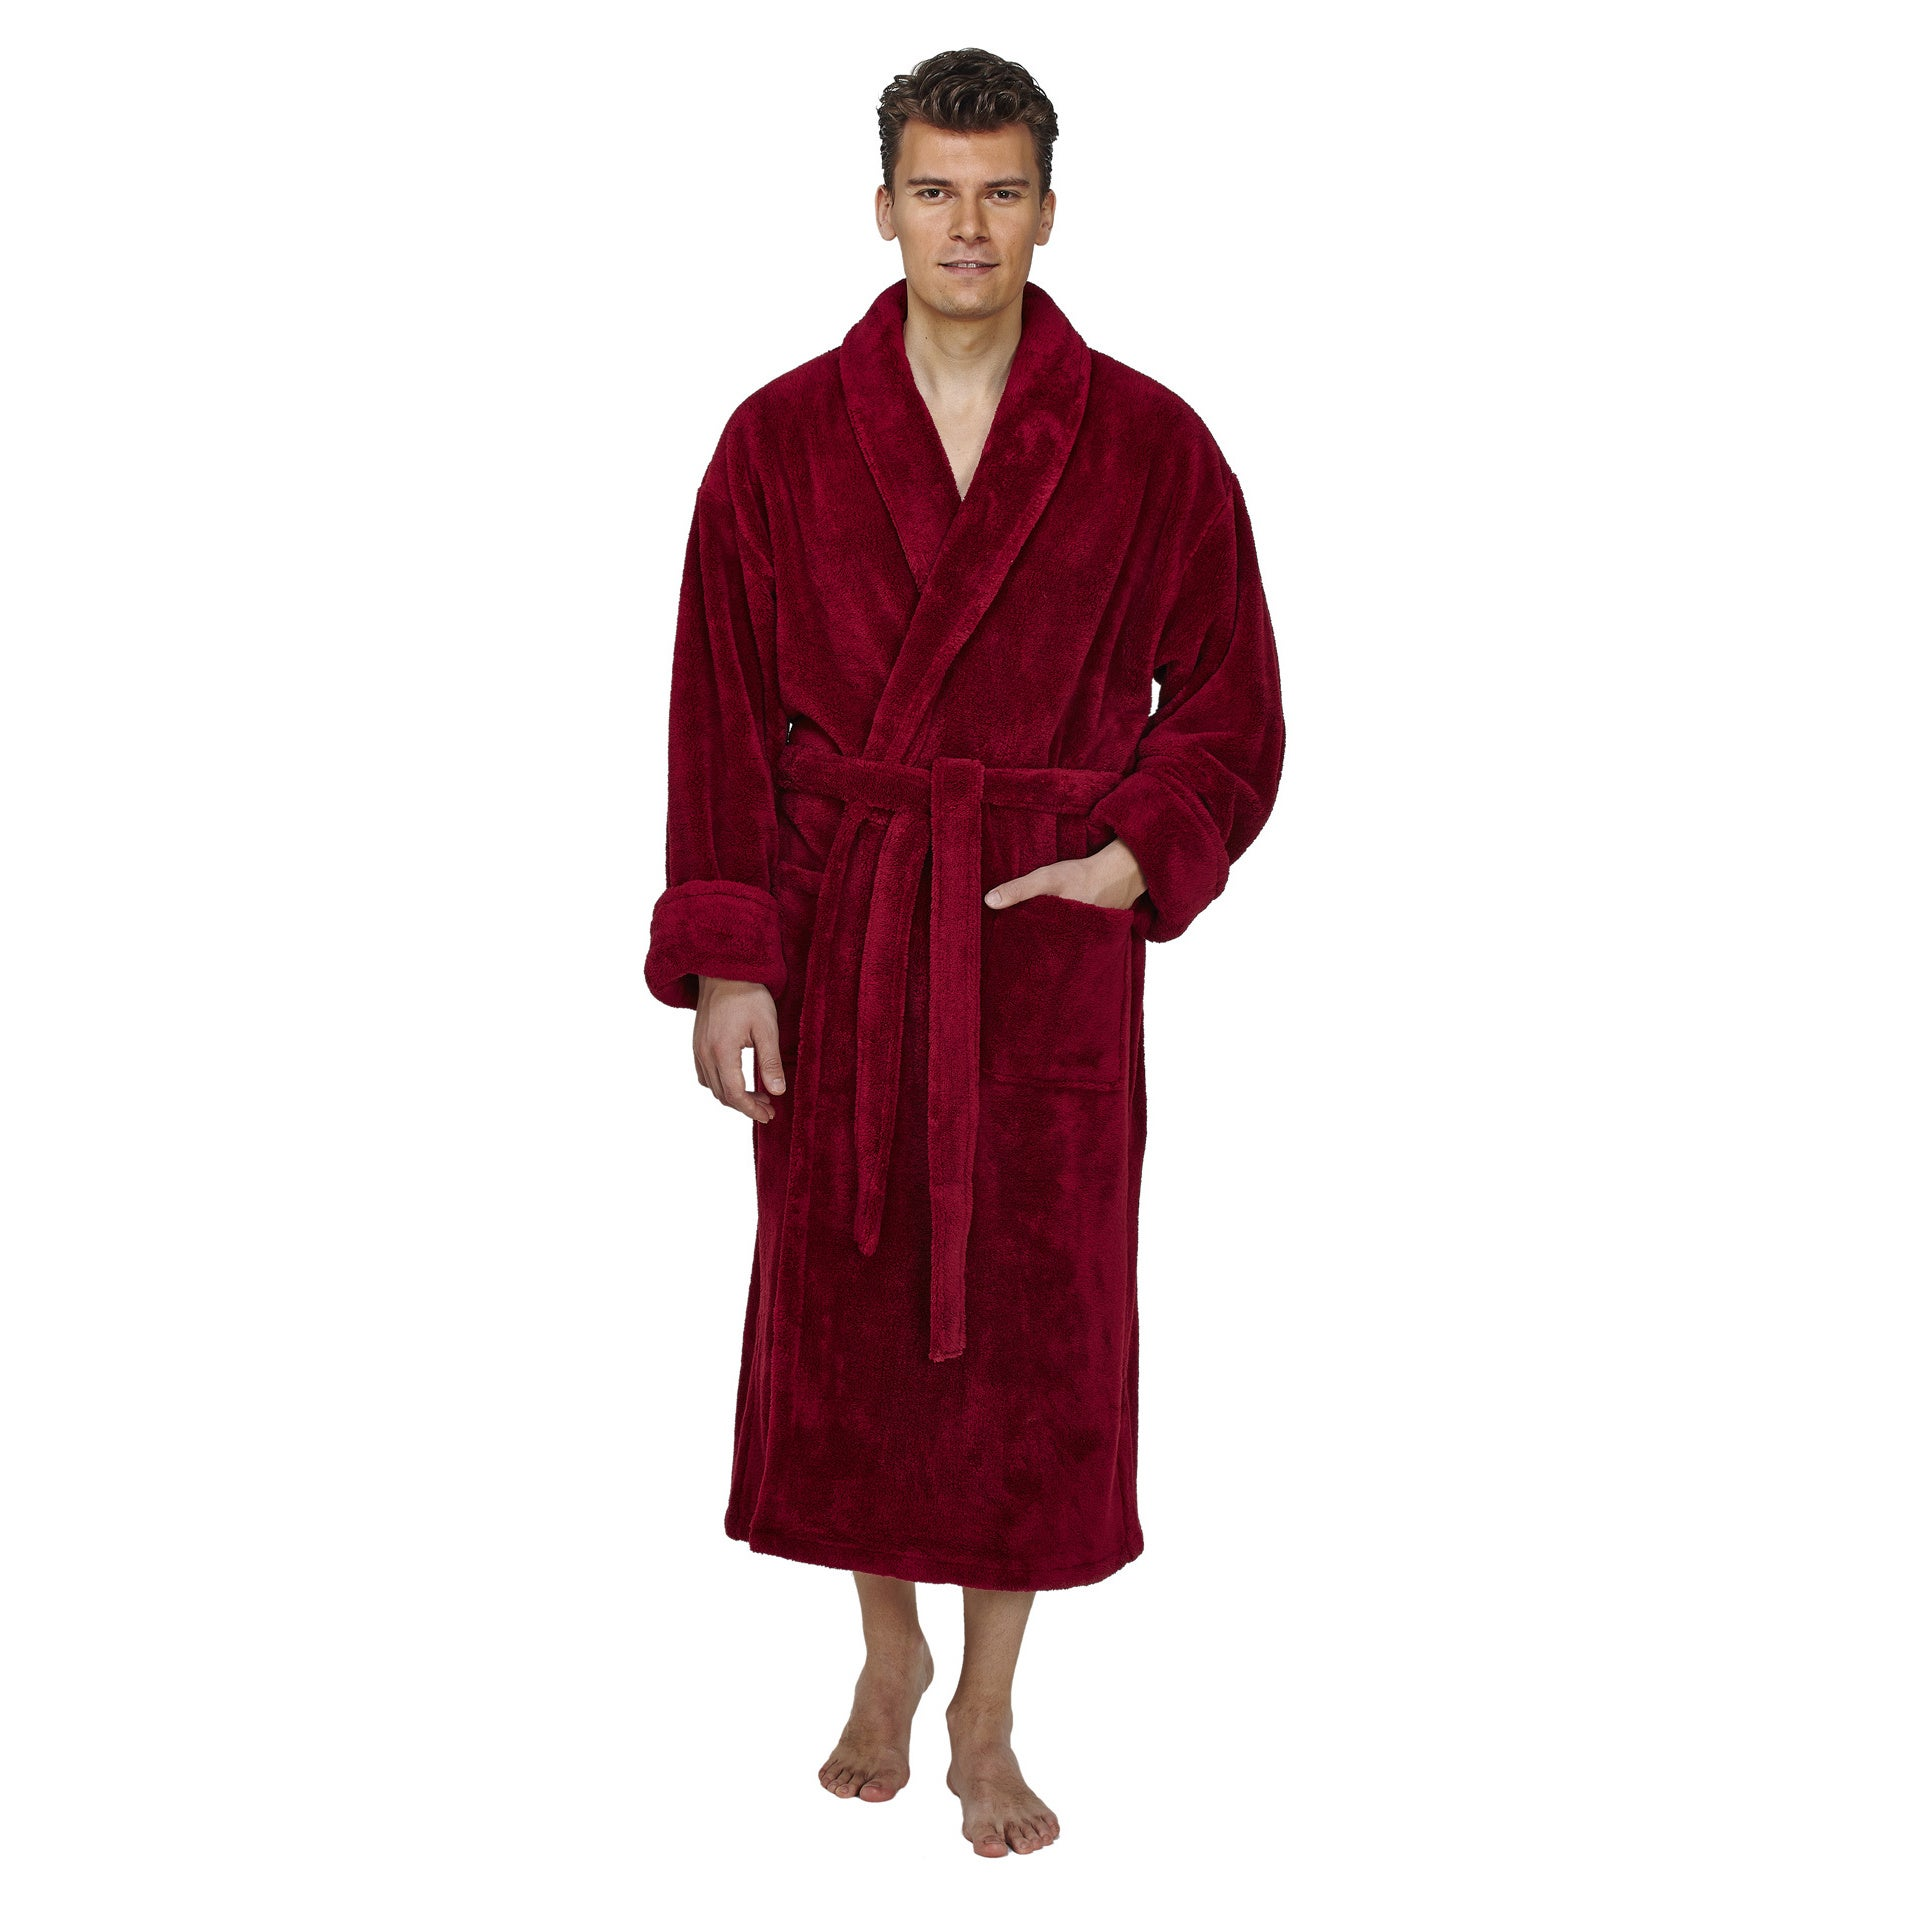 32d4b33196 Shop Men s Shawl Fleece Bathrobe Turkish Soft Plush Robe - Free Shipping  Today - Overstock - 14387006